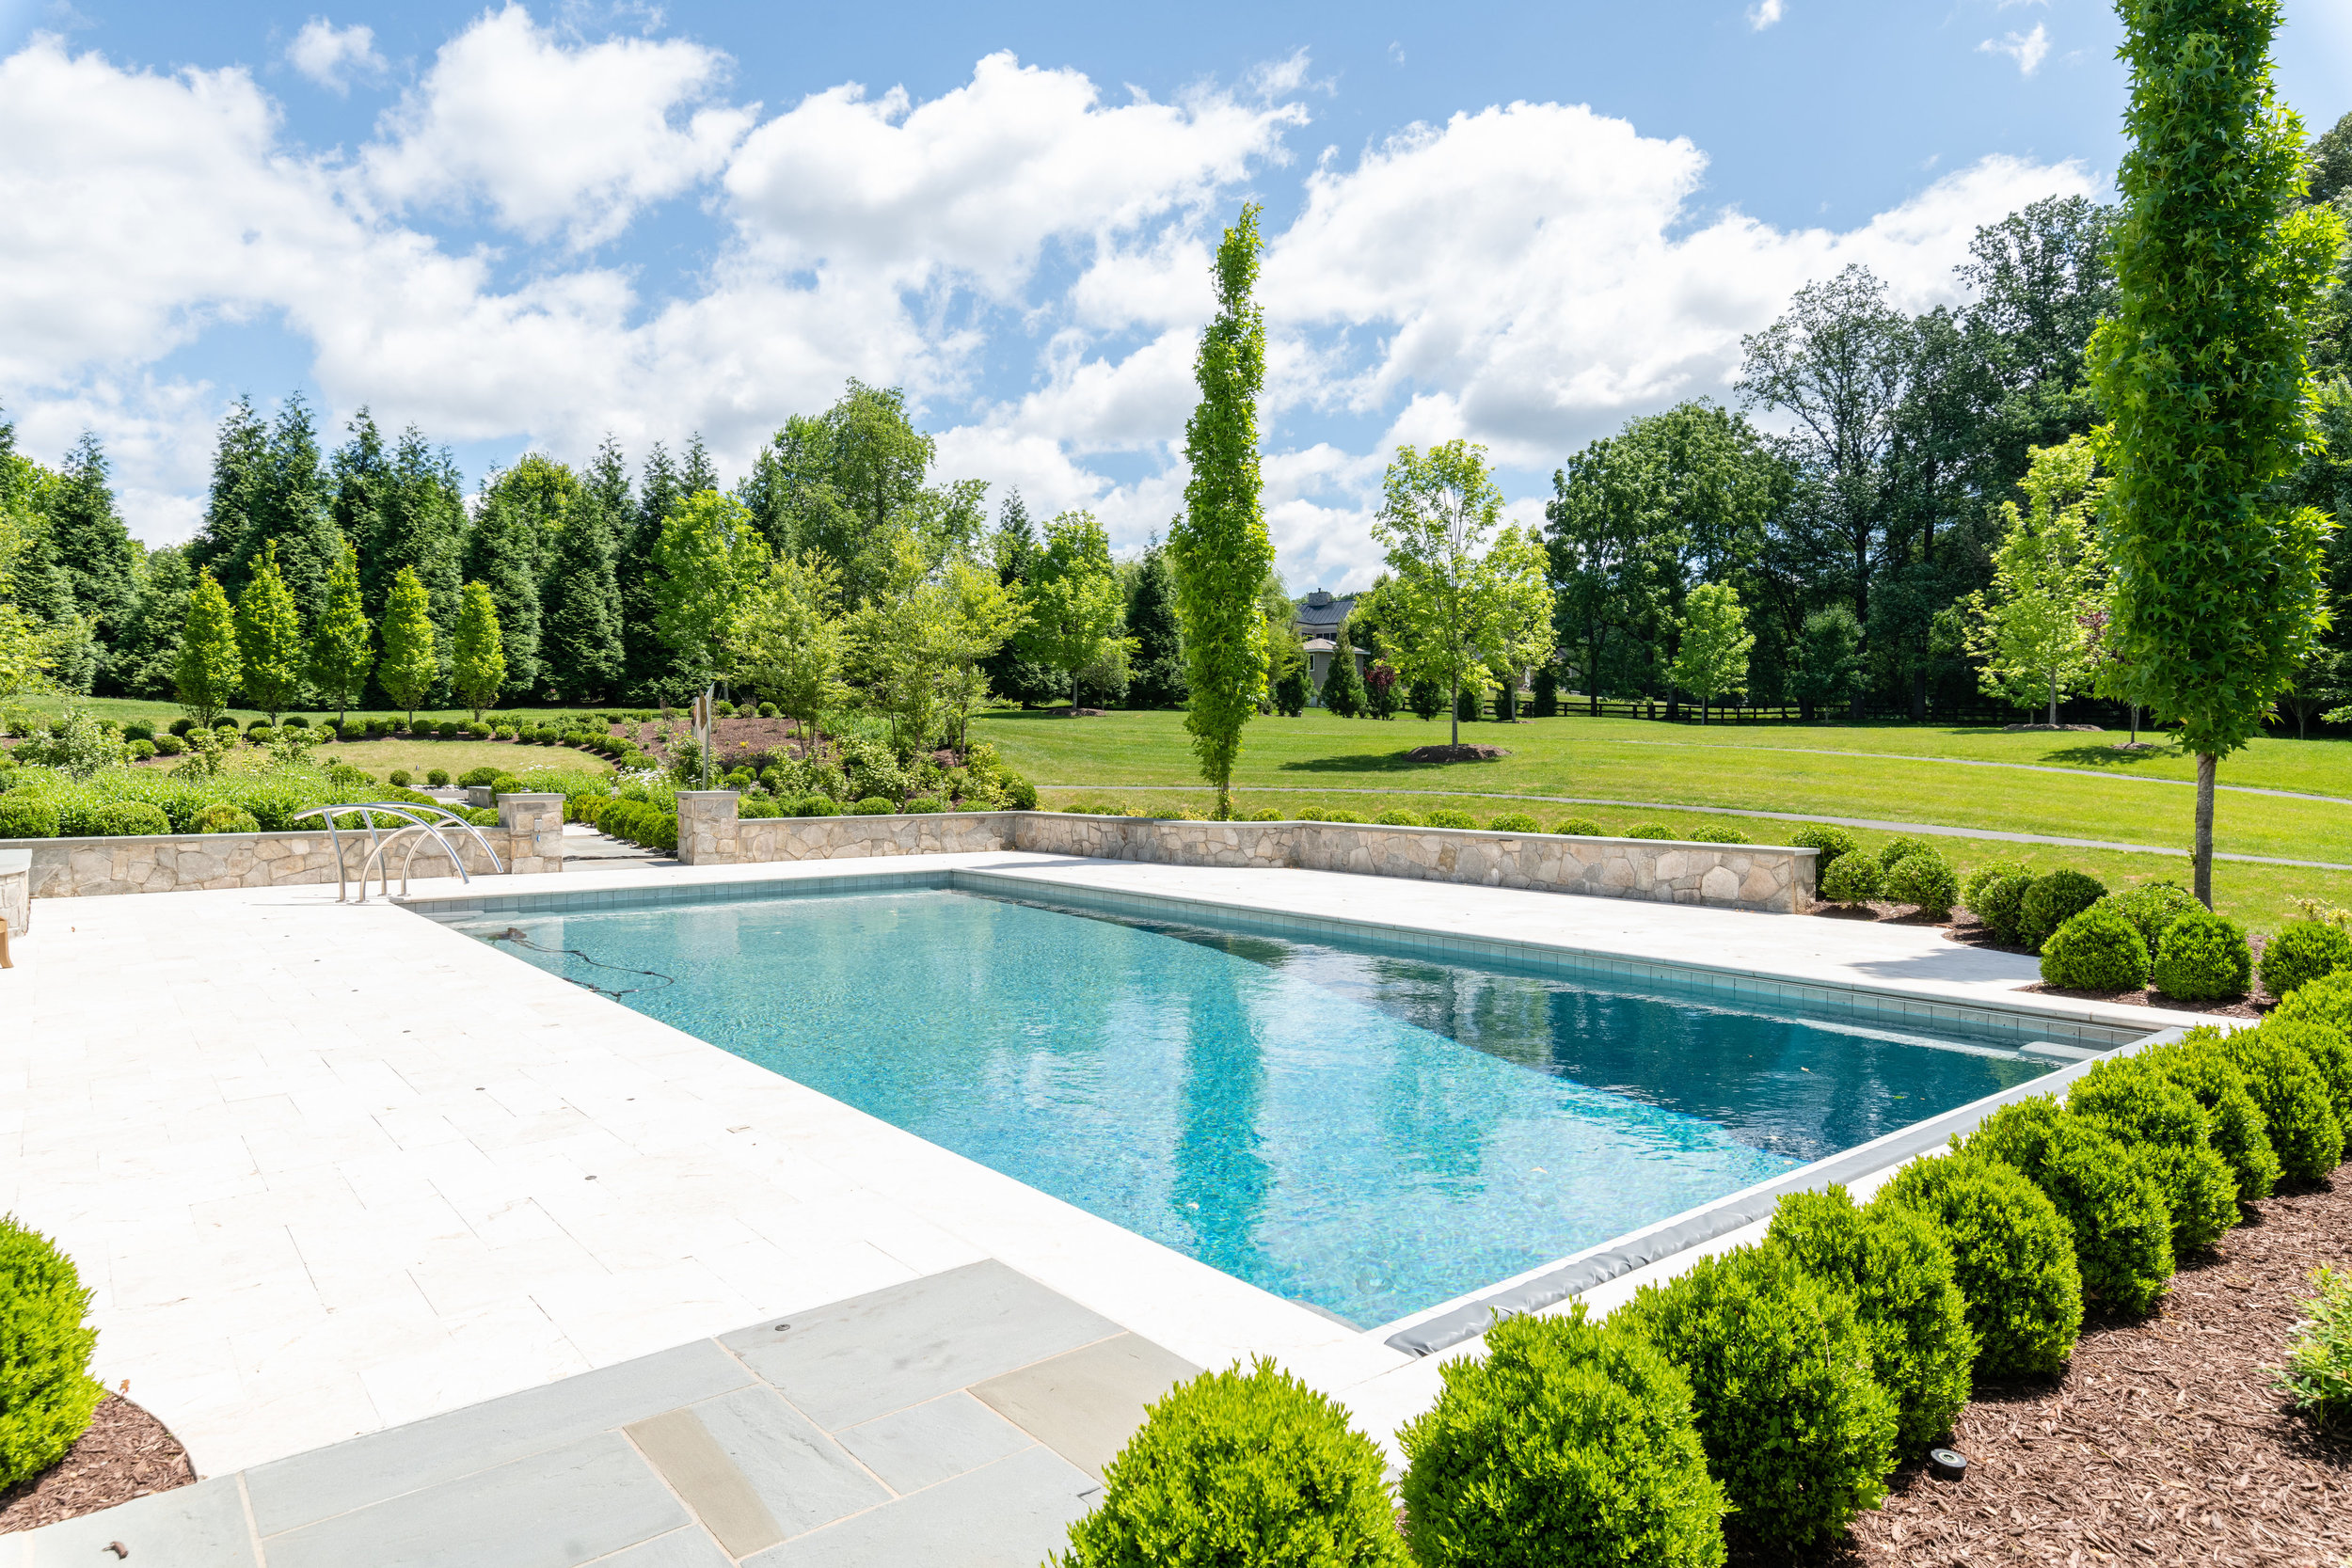 Heated Swimming Pool with Deck Jets